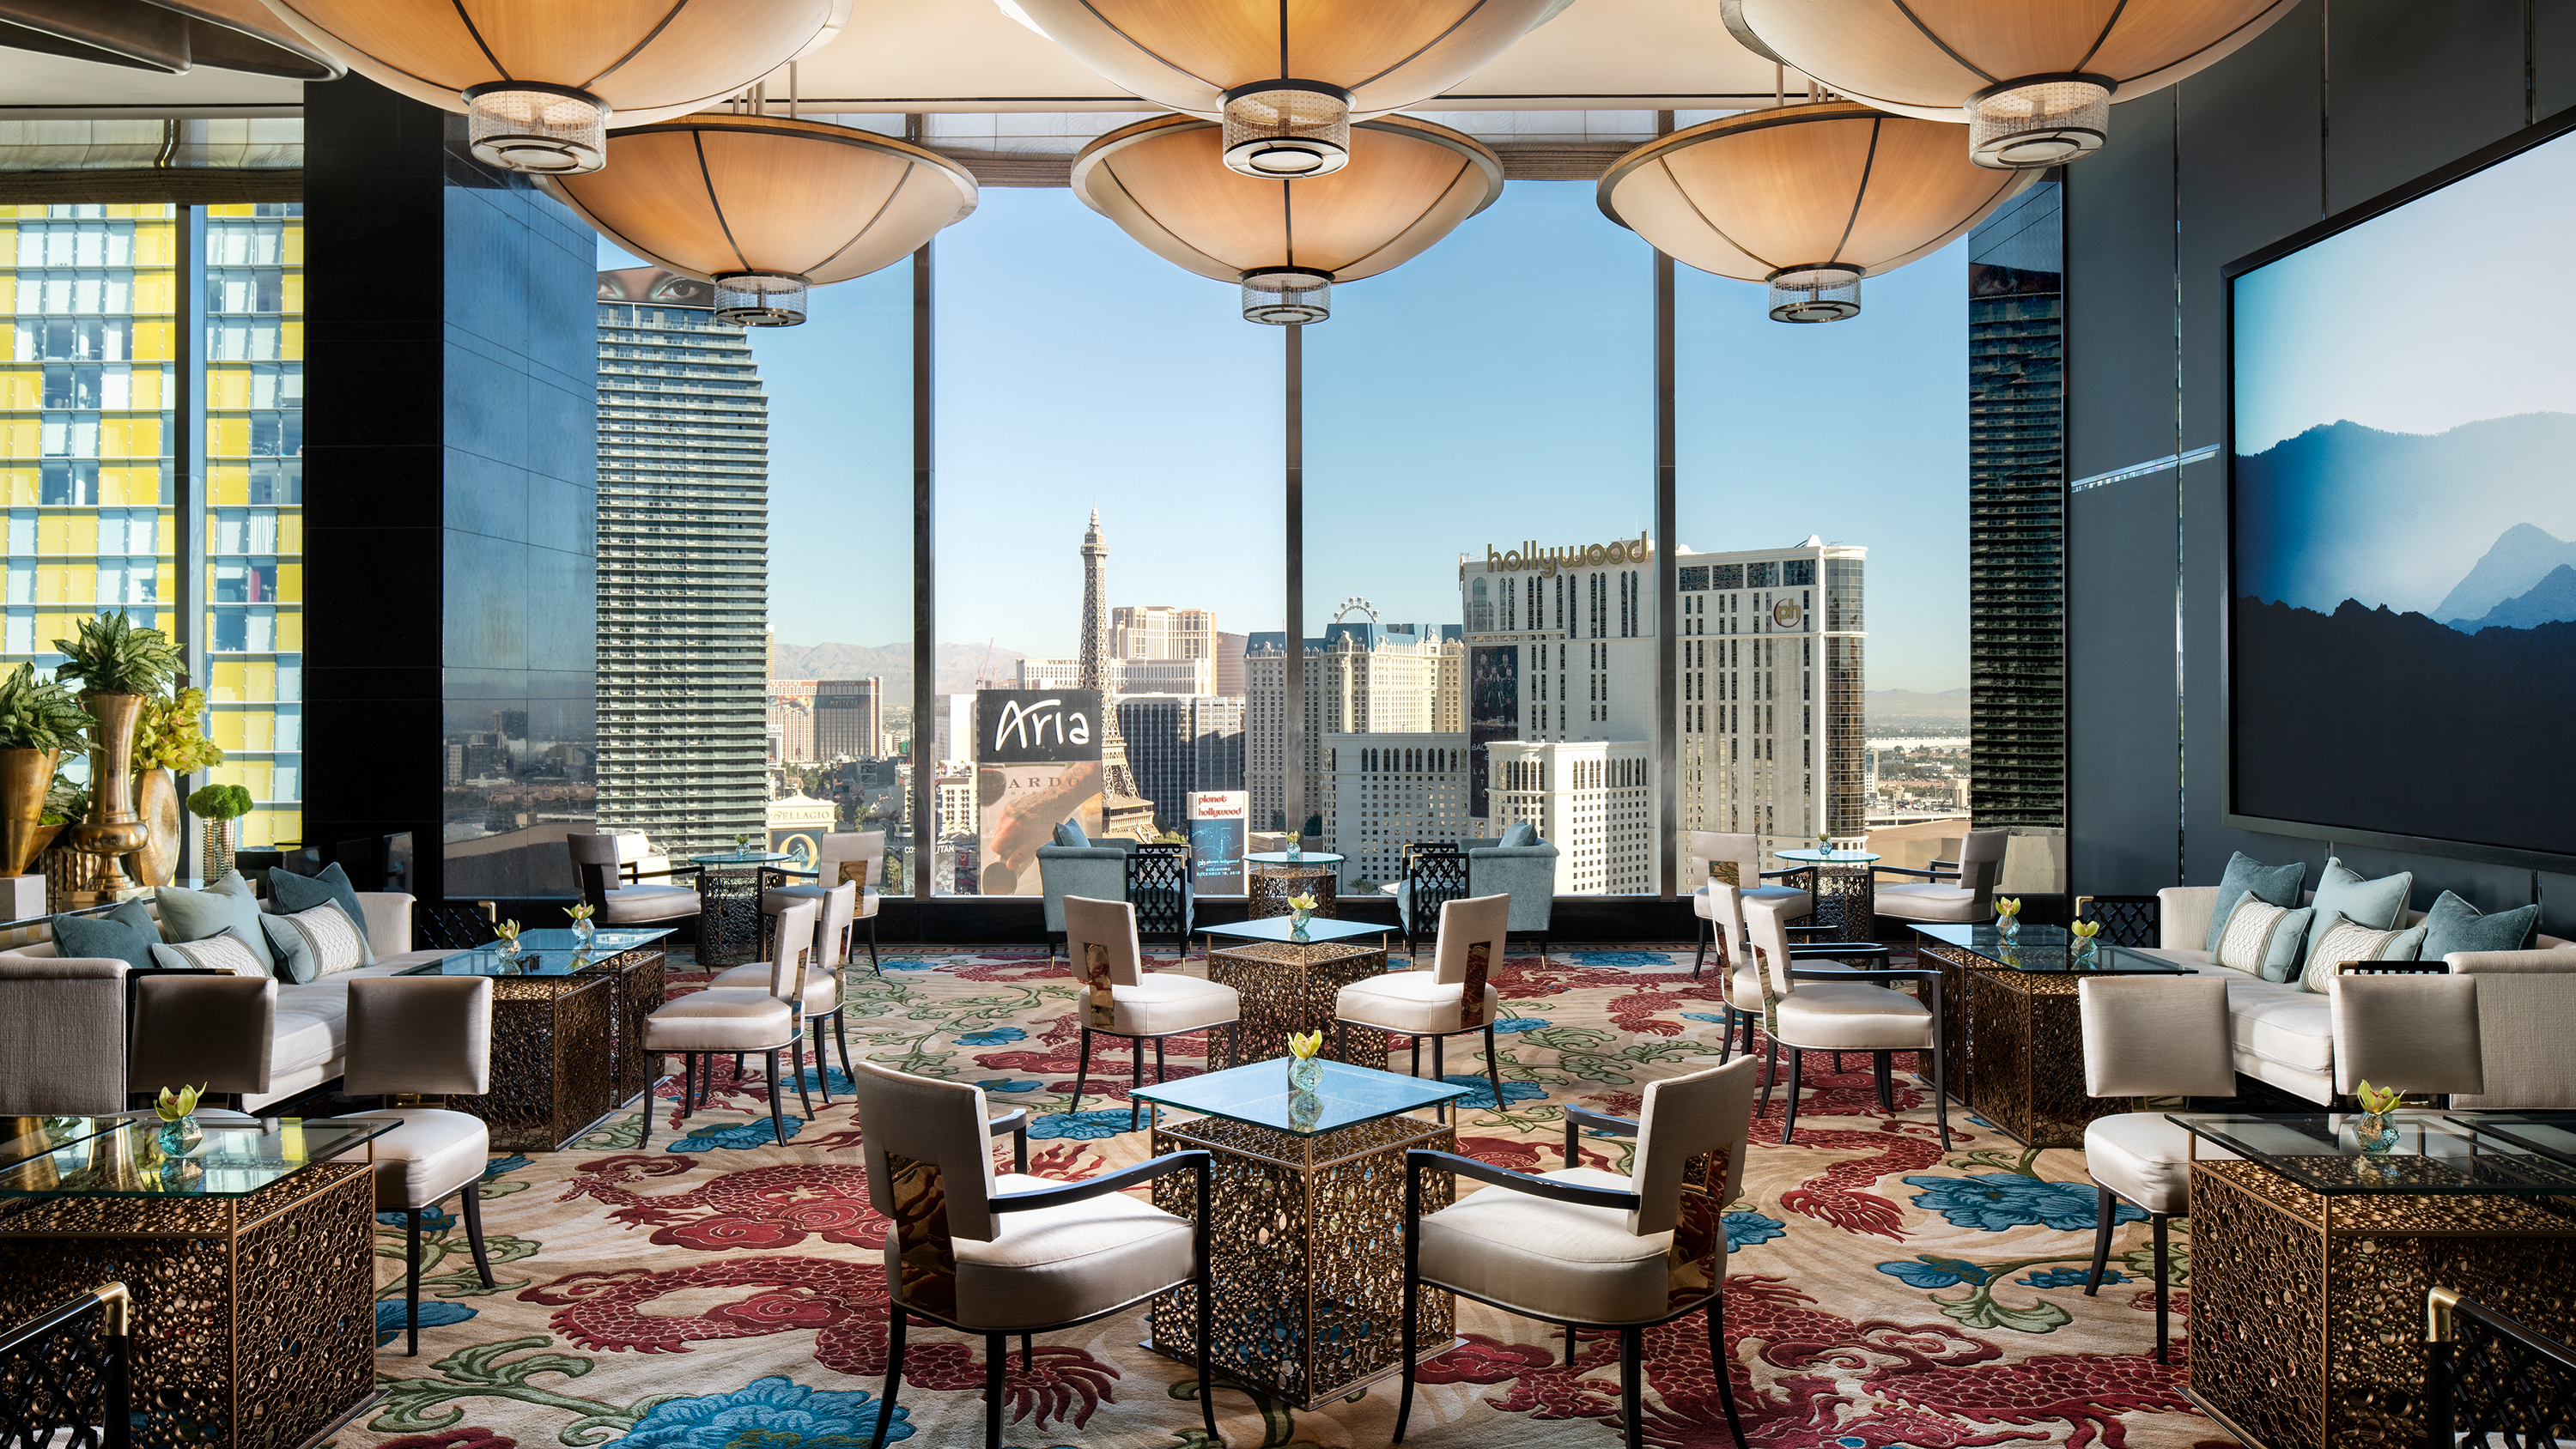 8 best Las Vegas Strip hotels | CNN Travel